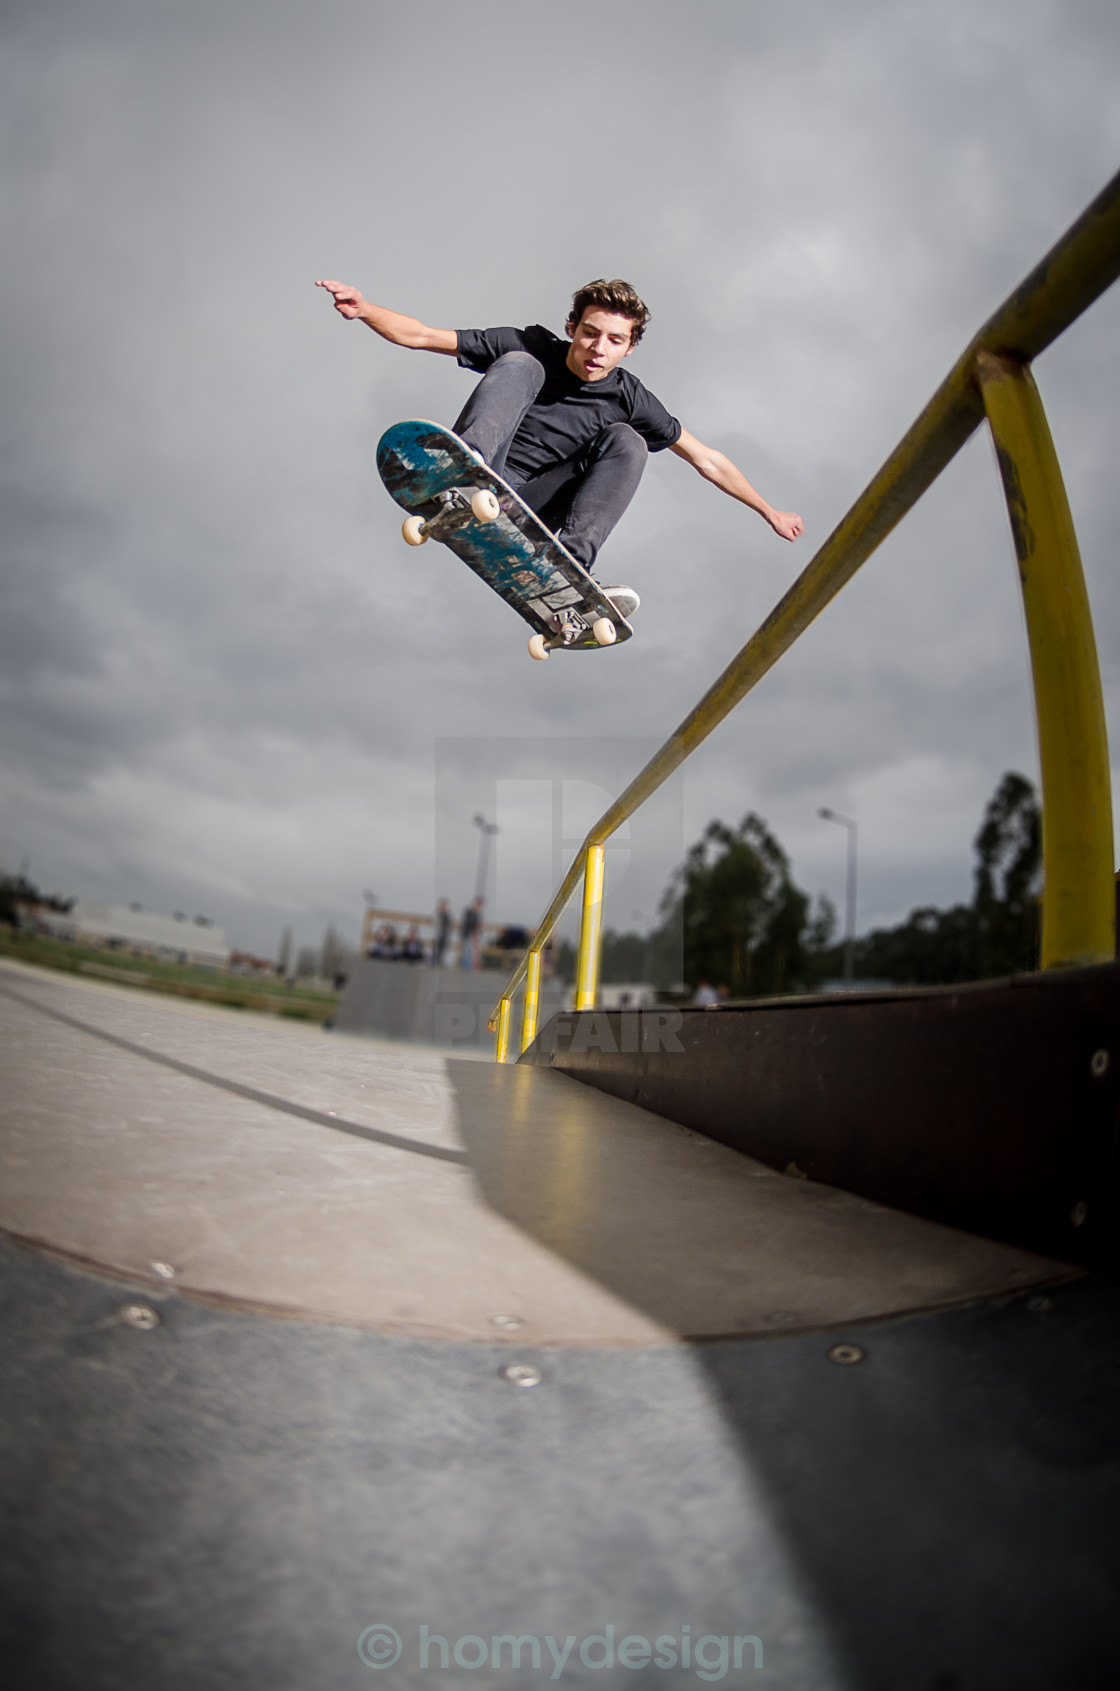 """Skateboarder doing a ollie"" stock image"